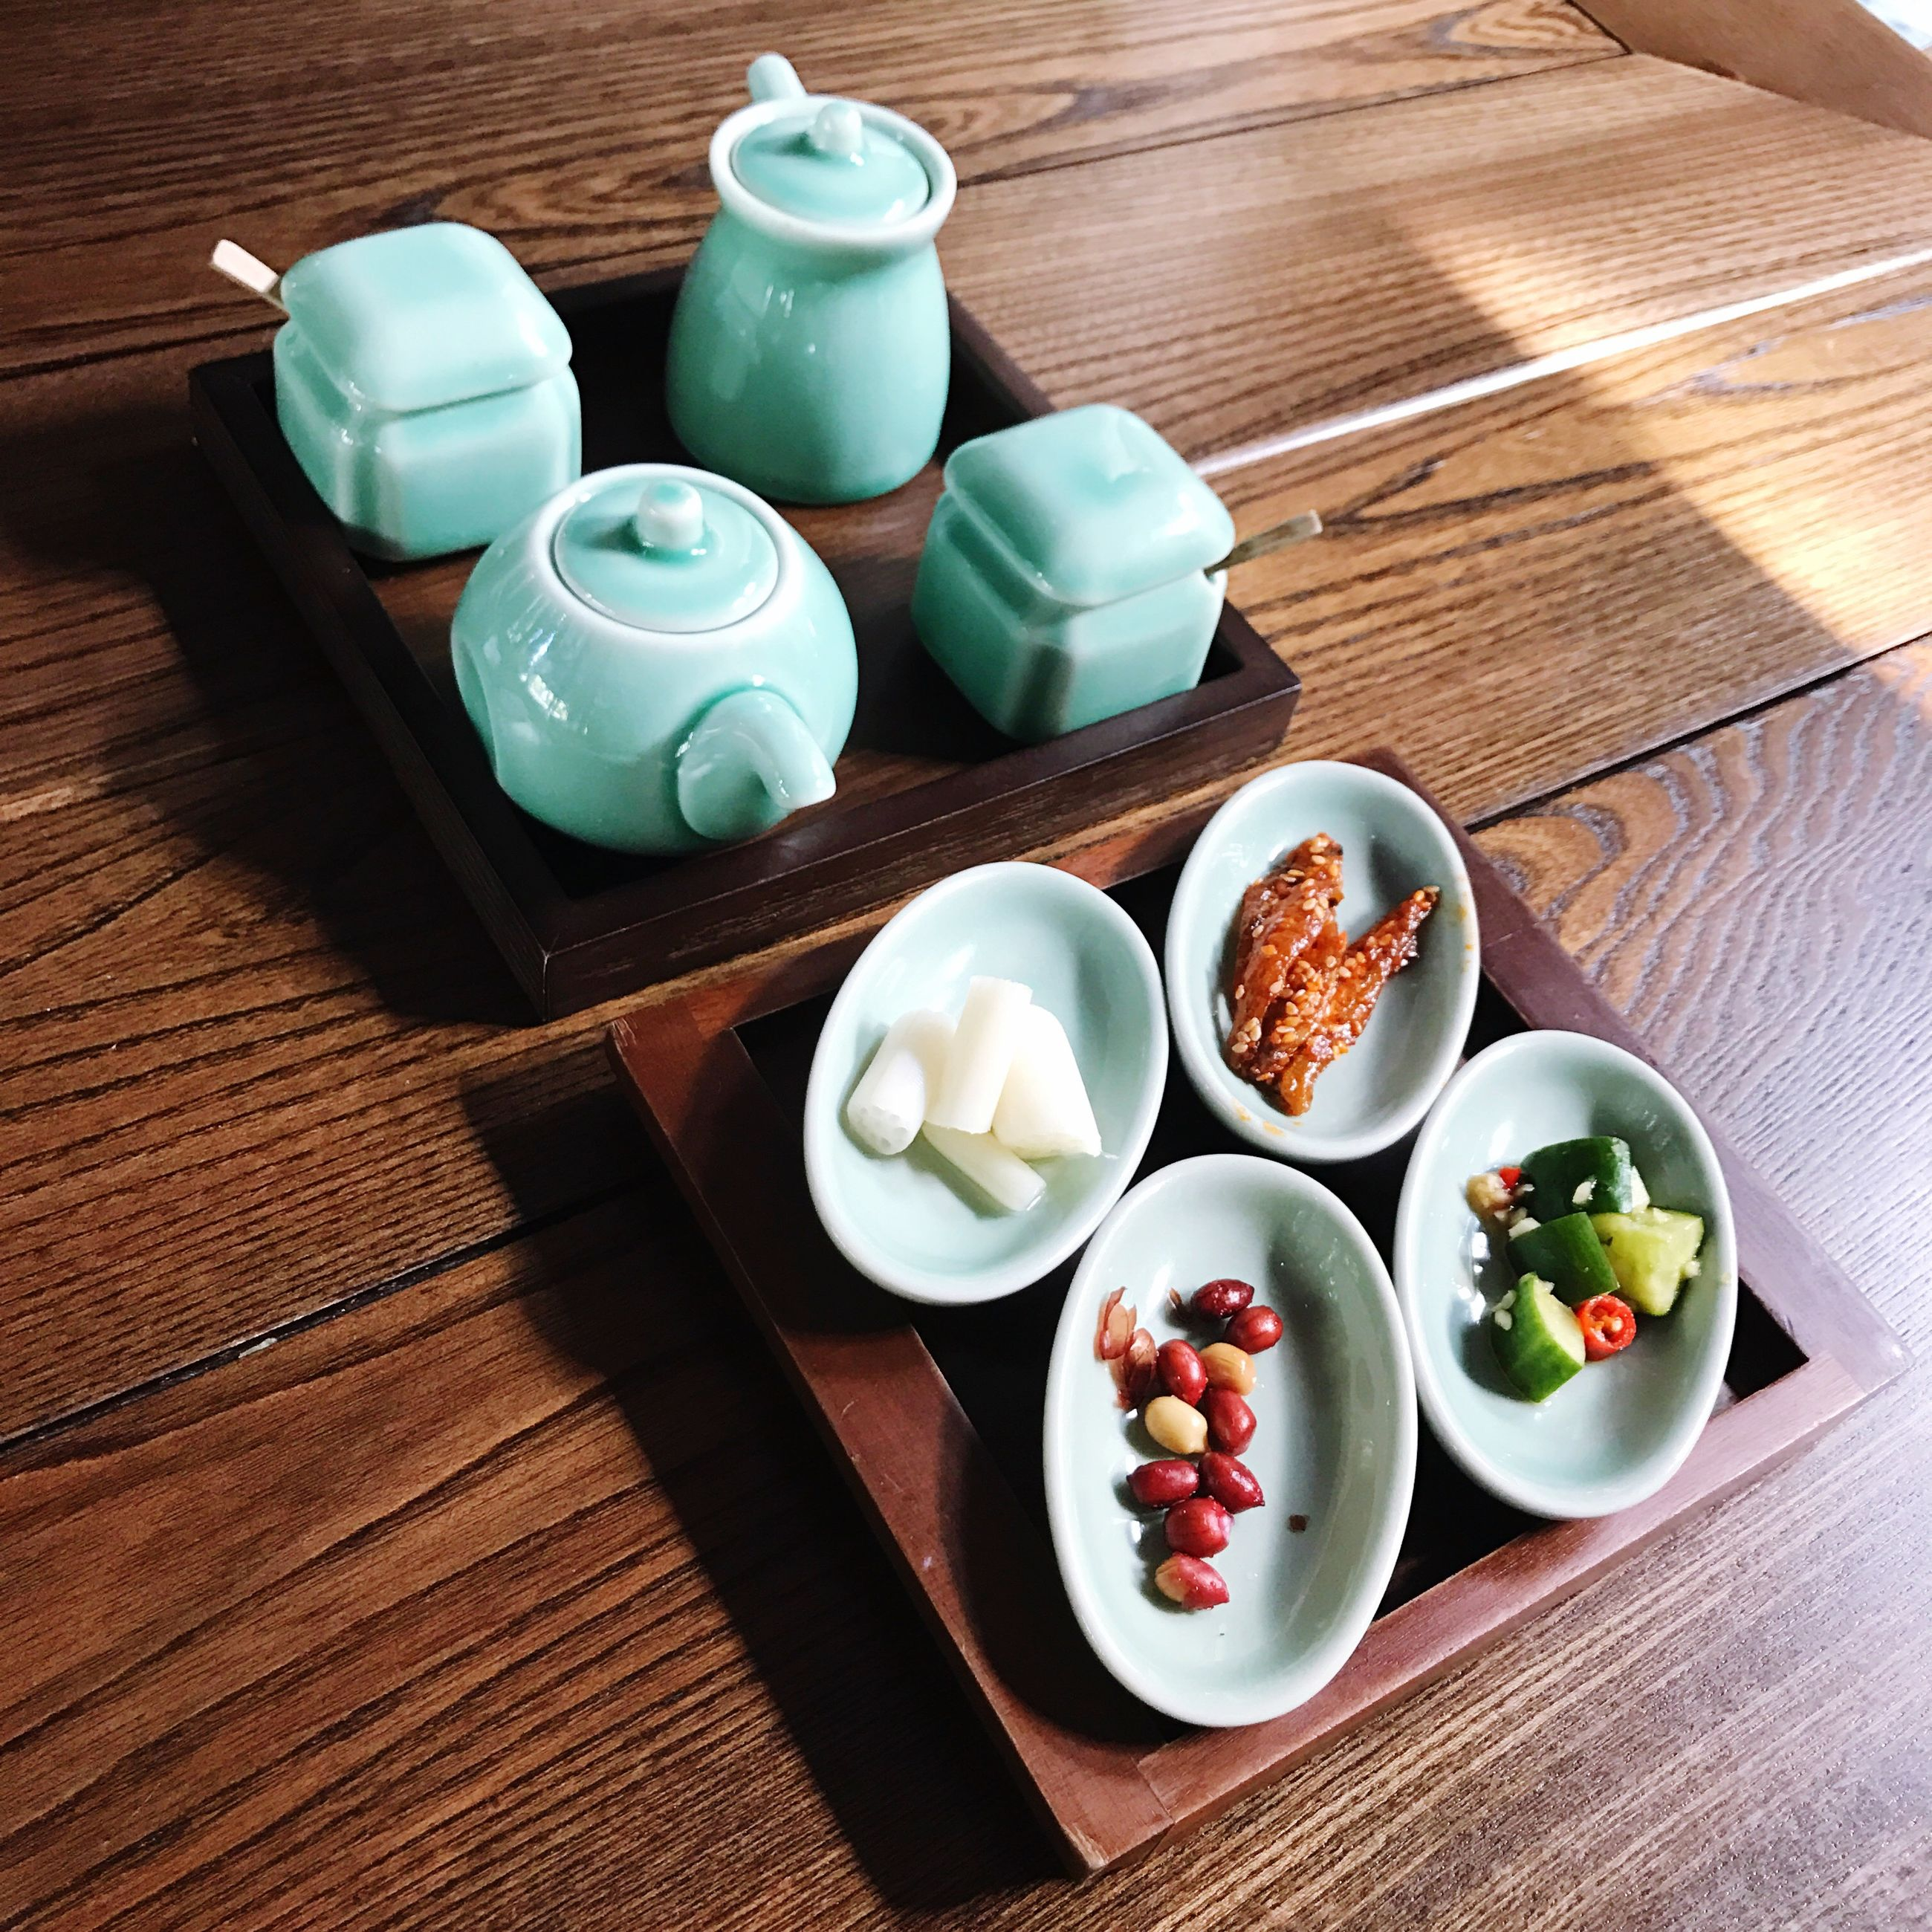 food, food and drink, high angle view, freshness, table, indoors, no people, healthy eating, serving tray, close-up, day